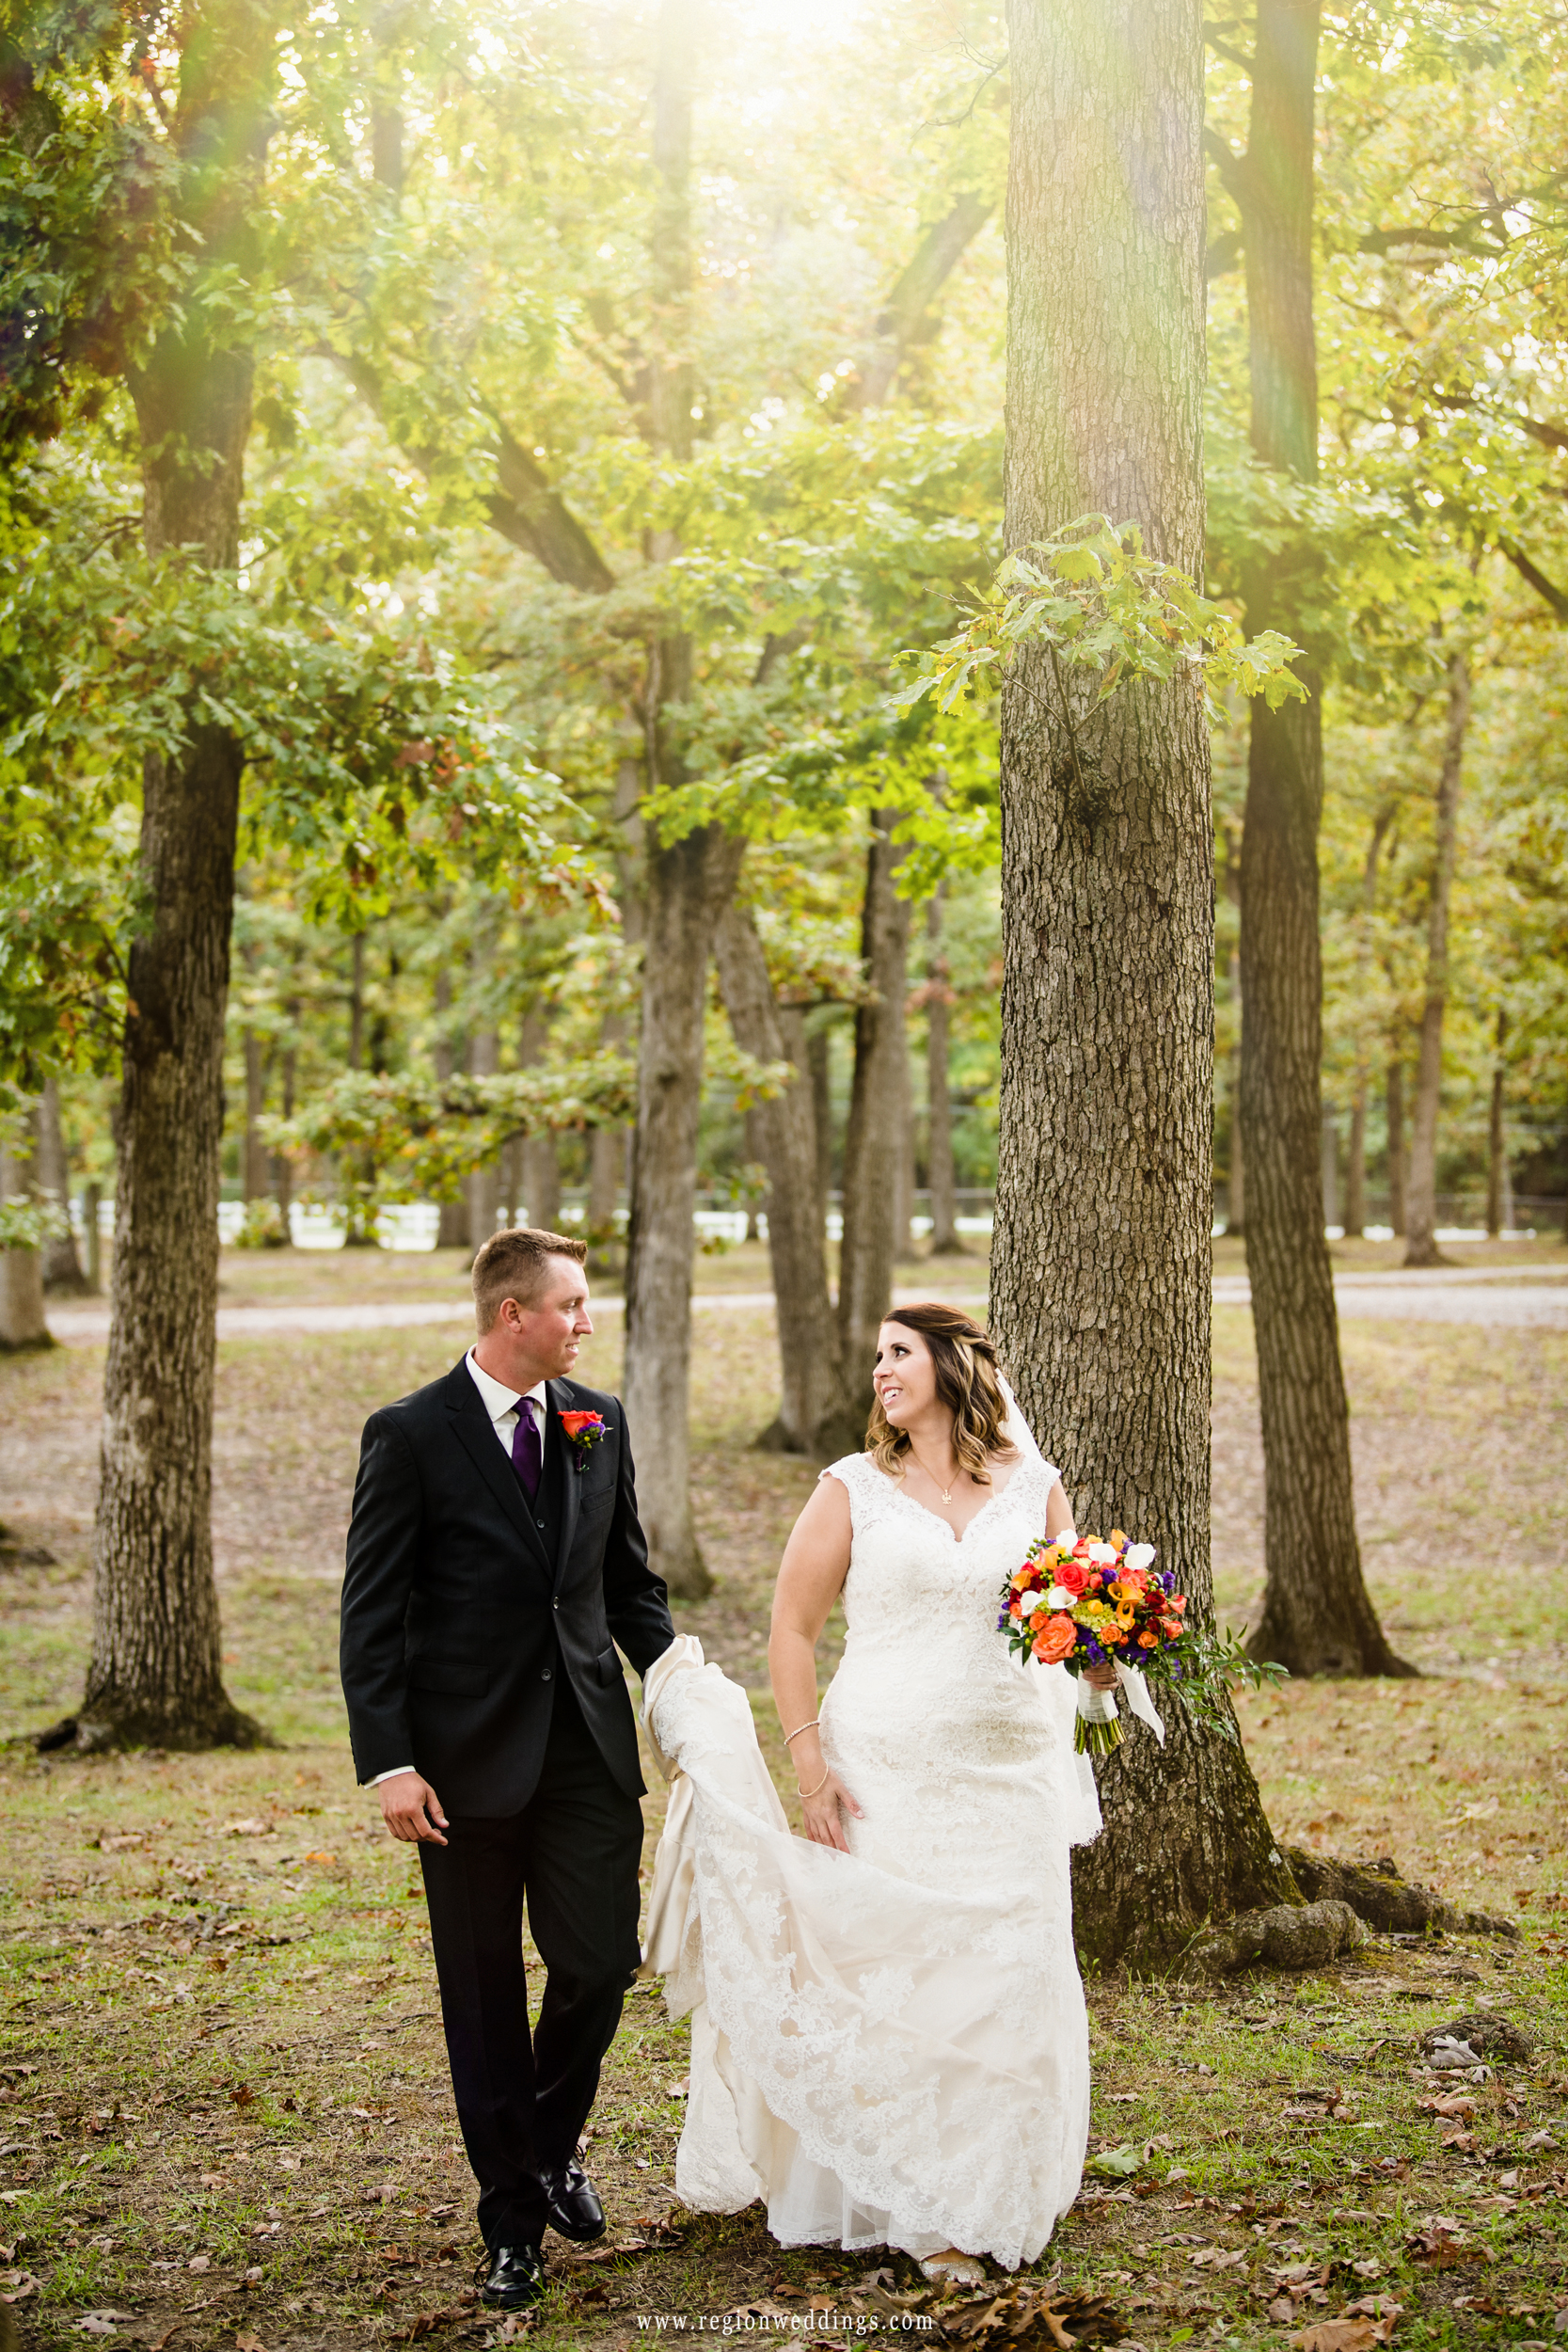 The bride and groom take a stroll in the wood at Lake County Fairgrounds.